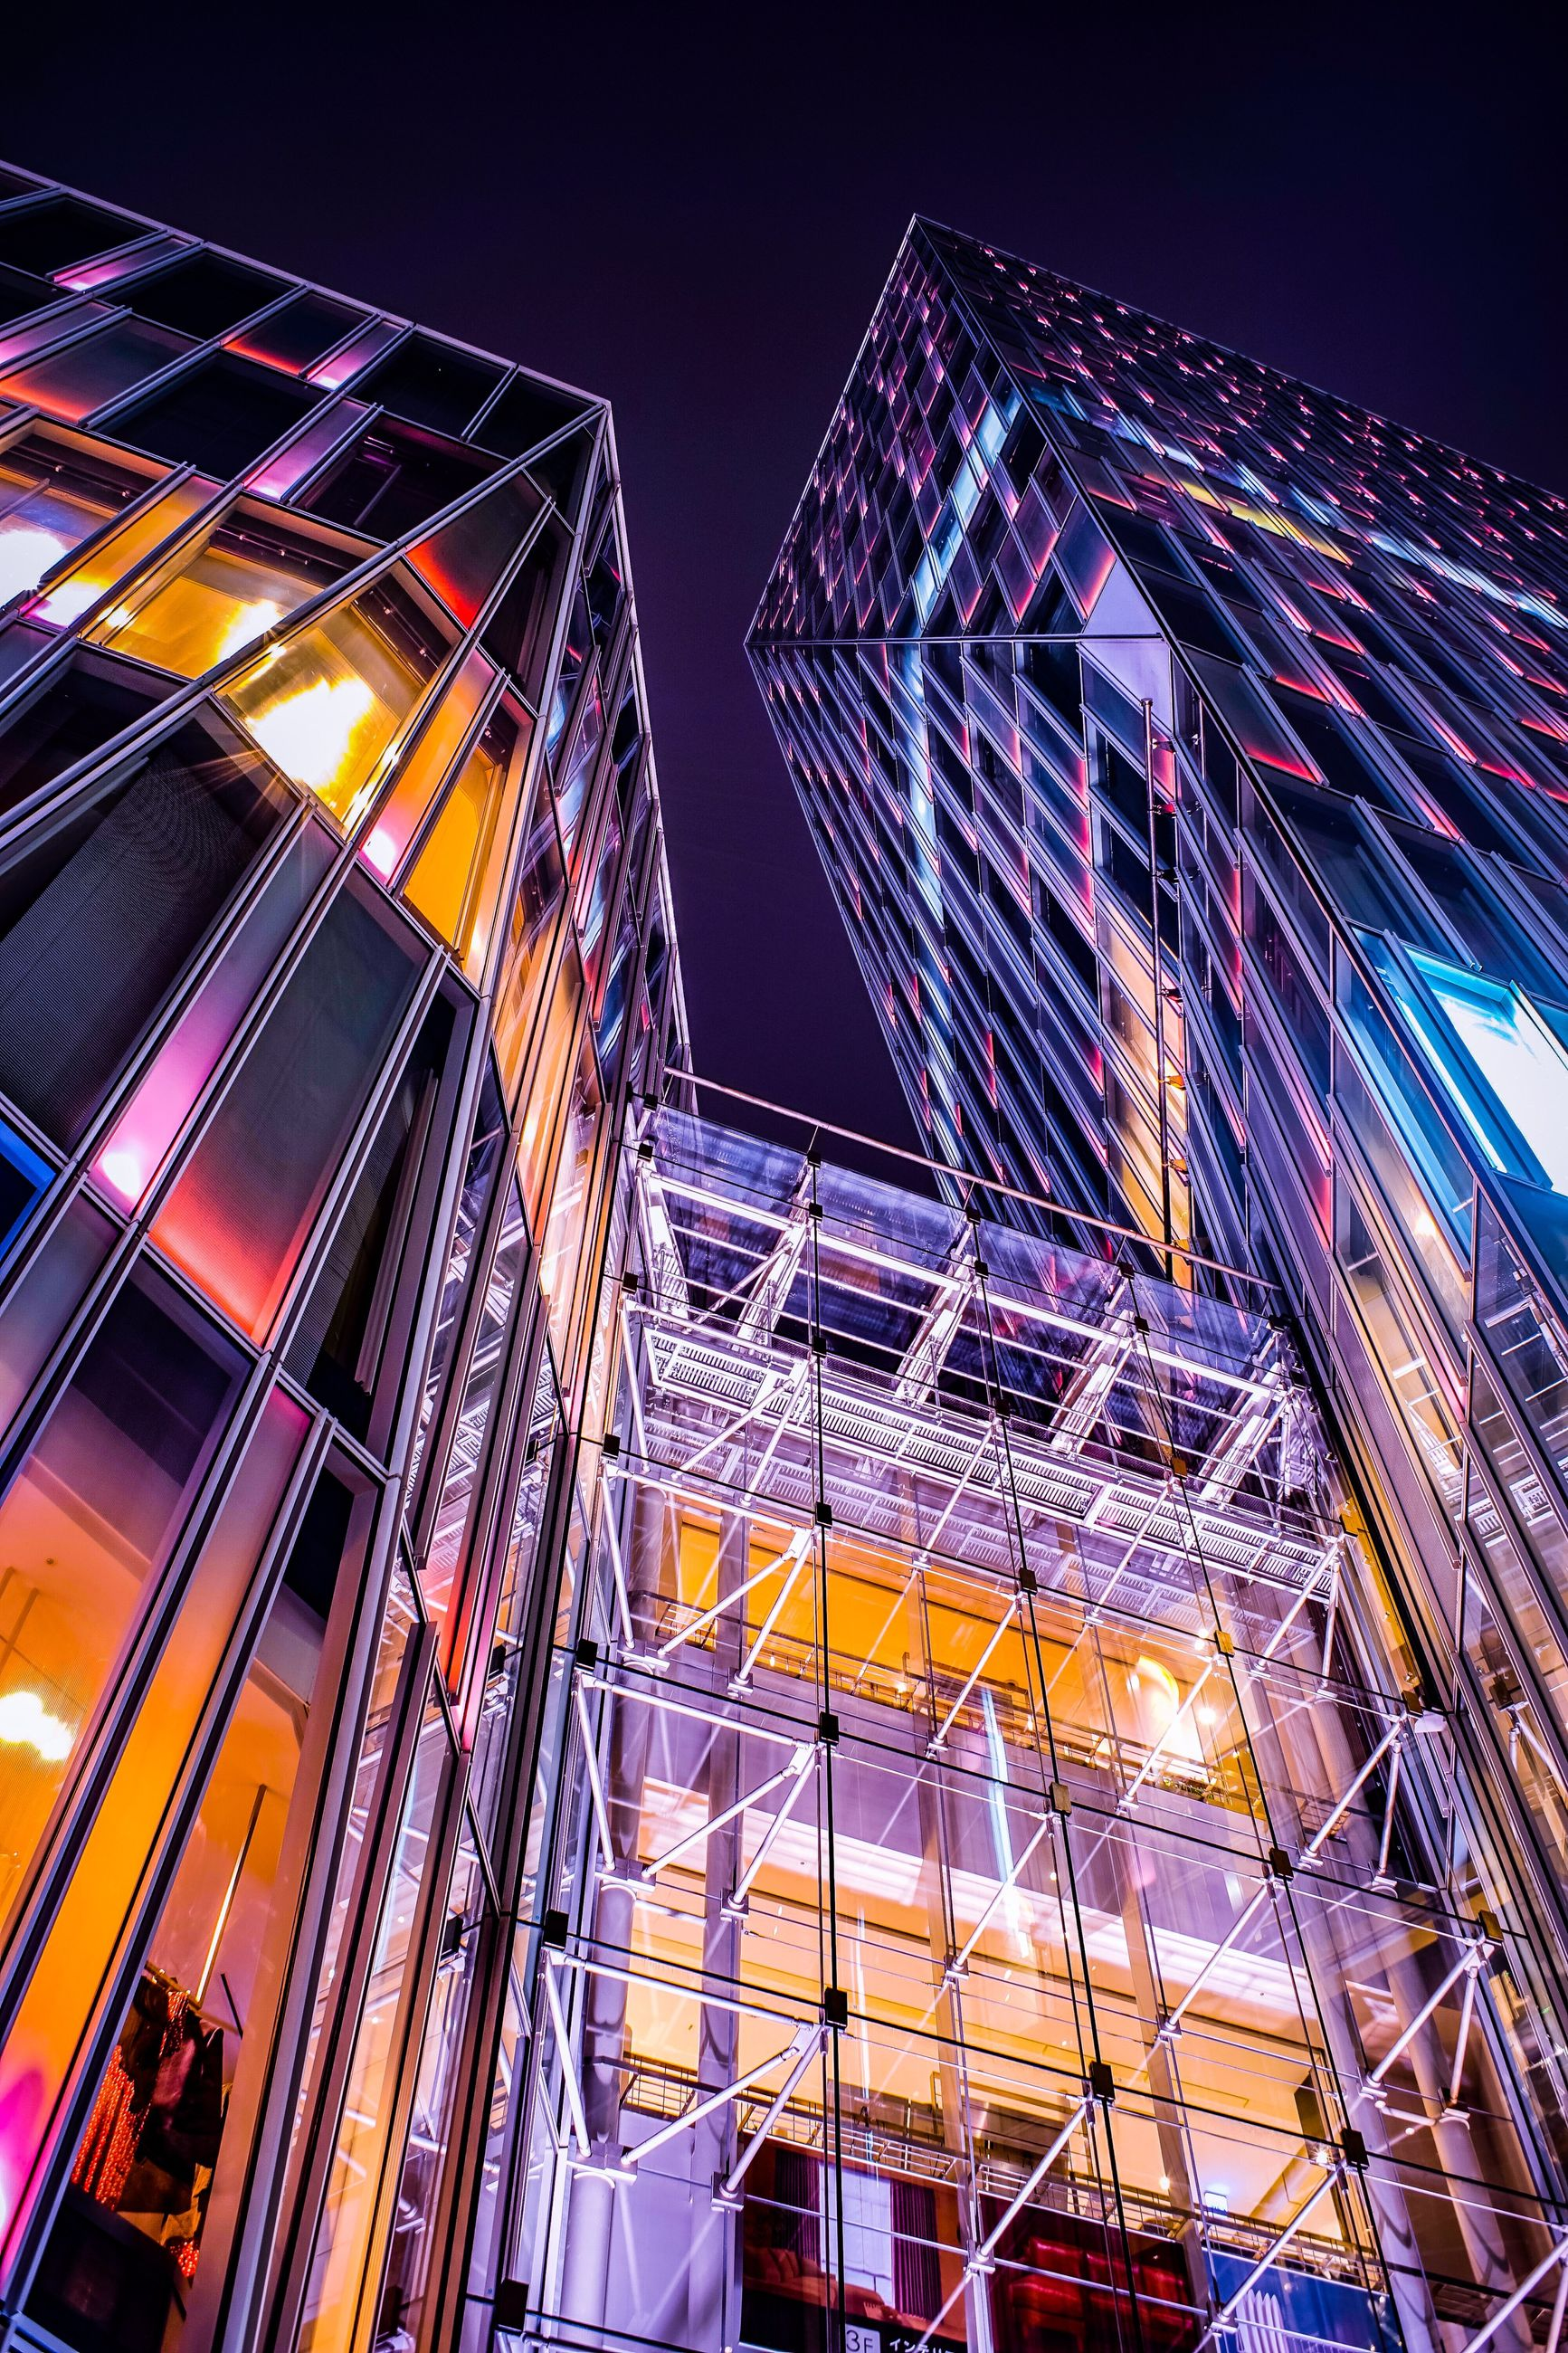 illuminated, building exterior, architecture, built structure, night, low angle view, city, sky, building, modern, office building exterior, tall - high, no people, glass - material, nature, office, outdoors, clear sky, skyscraper, multi colored